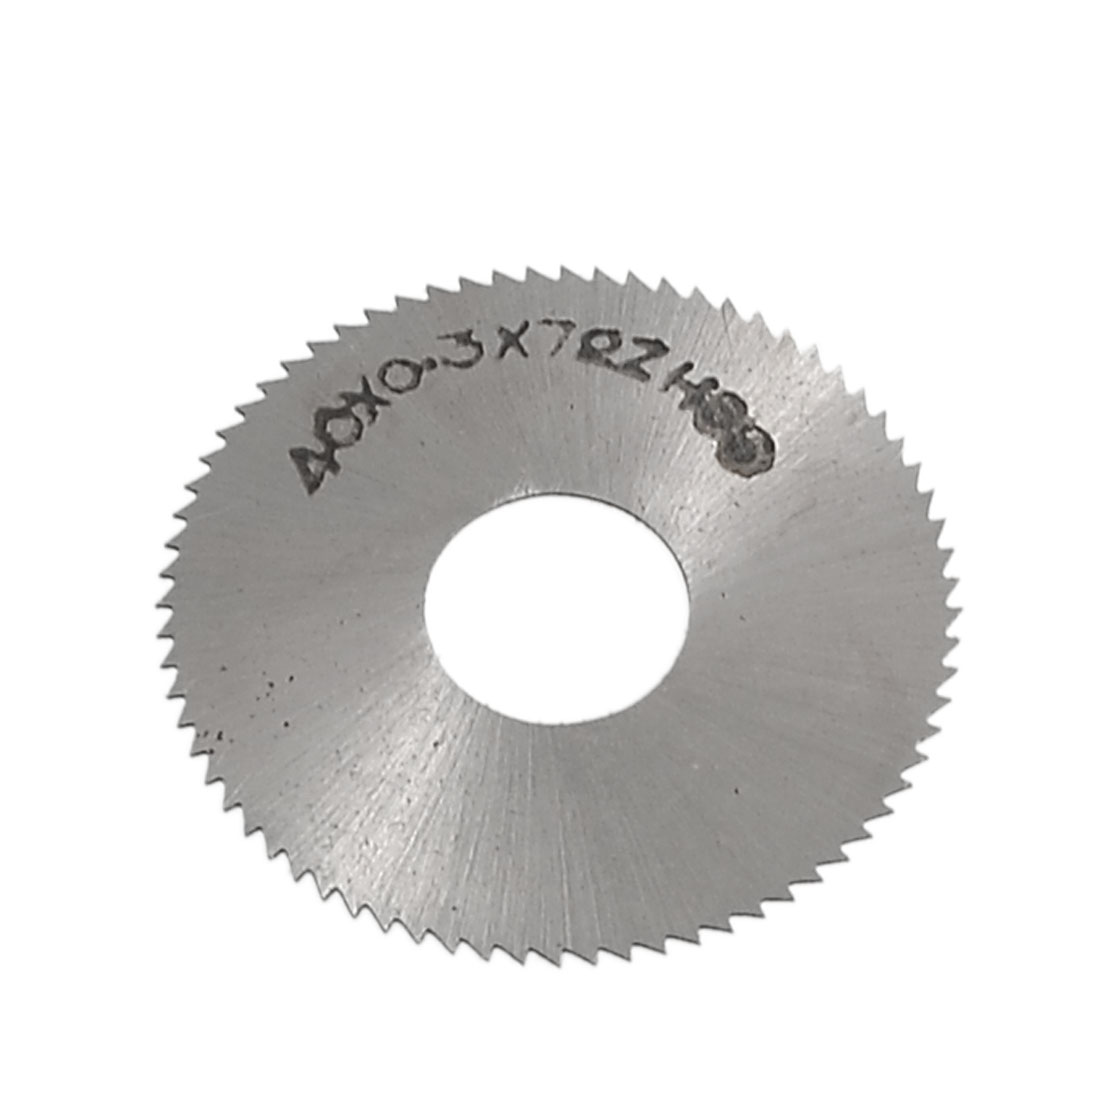 "40mm 1 9/16"" OD 0.3mm Thickness HSS Round 72T Slitting Saw"